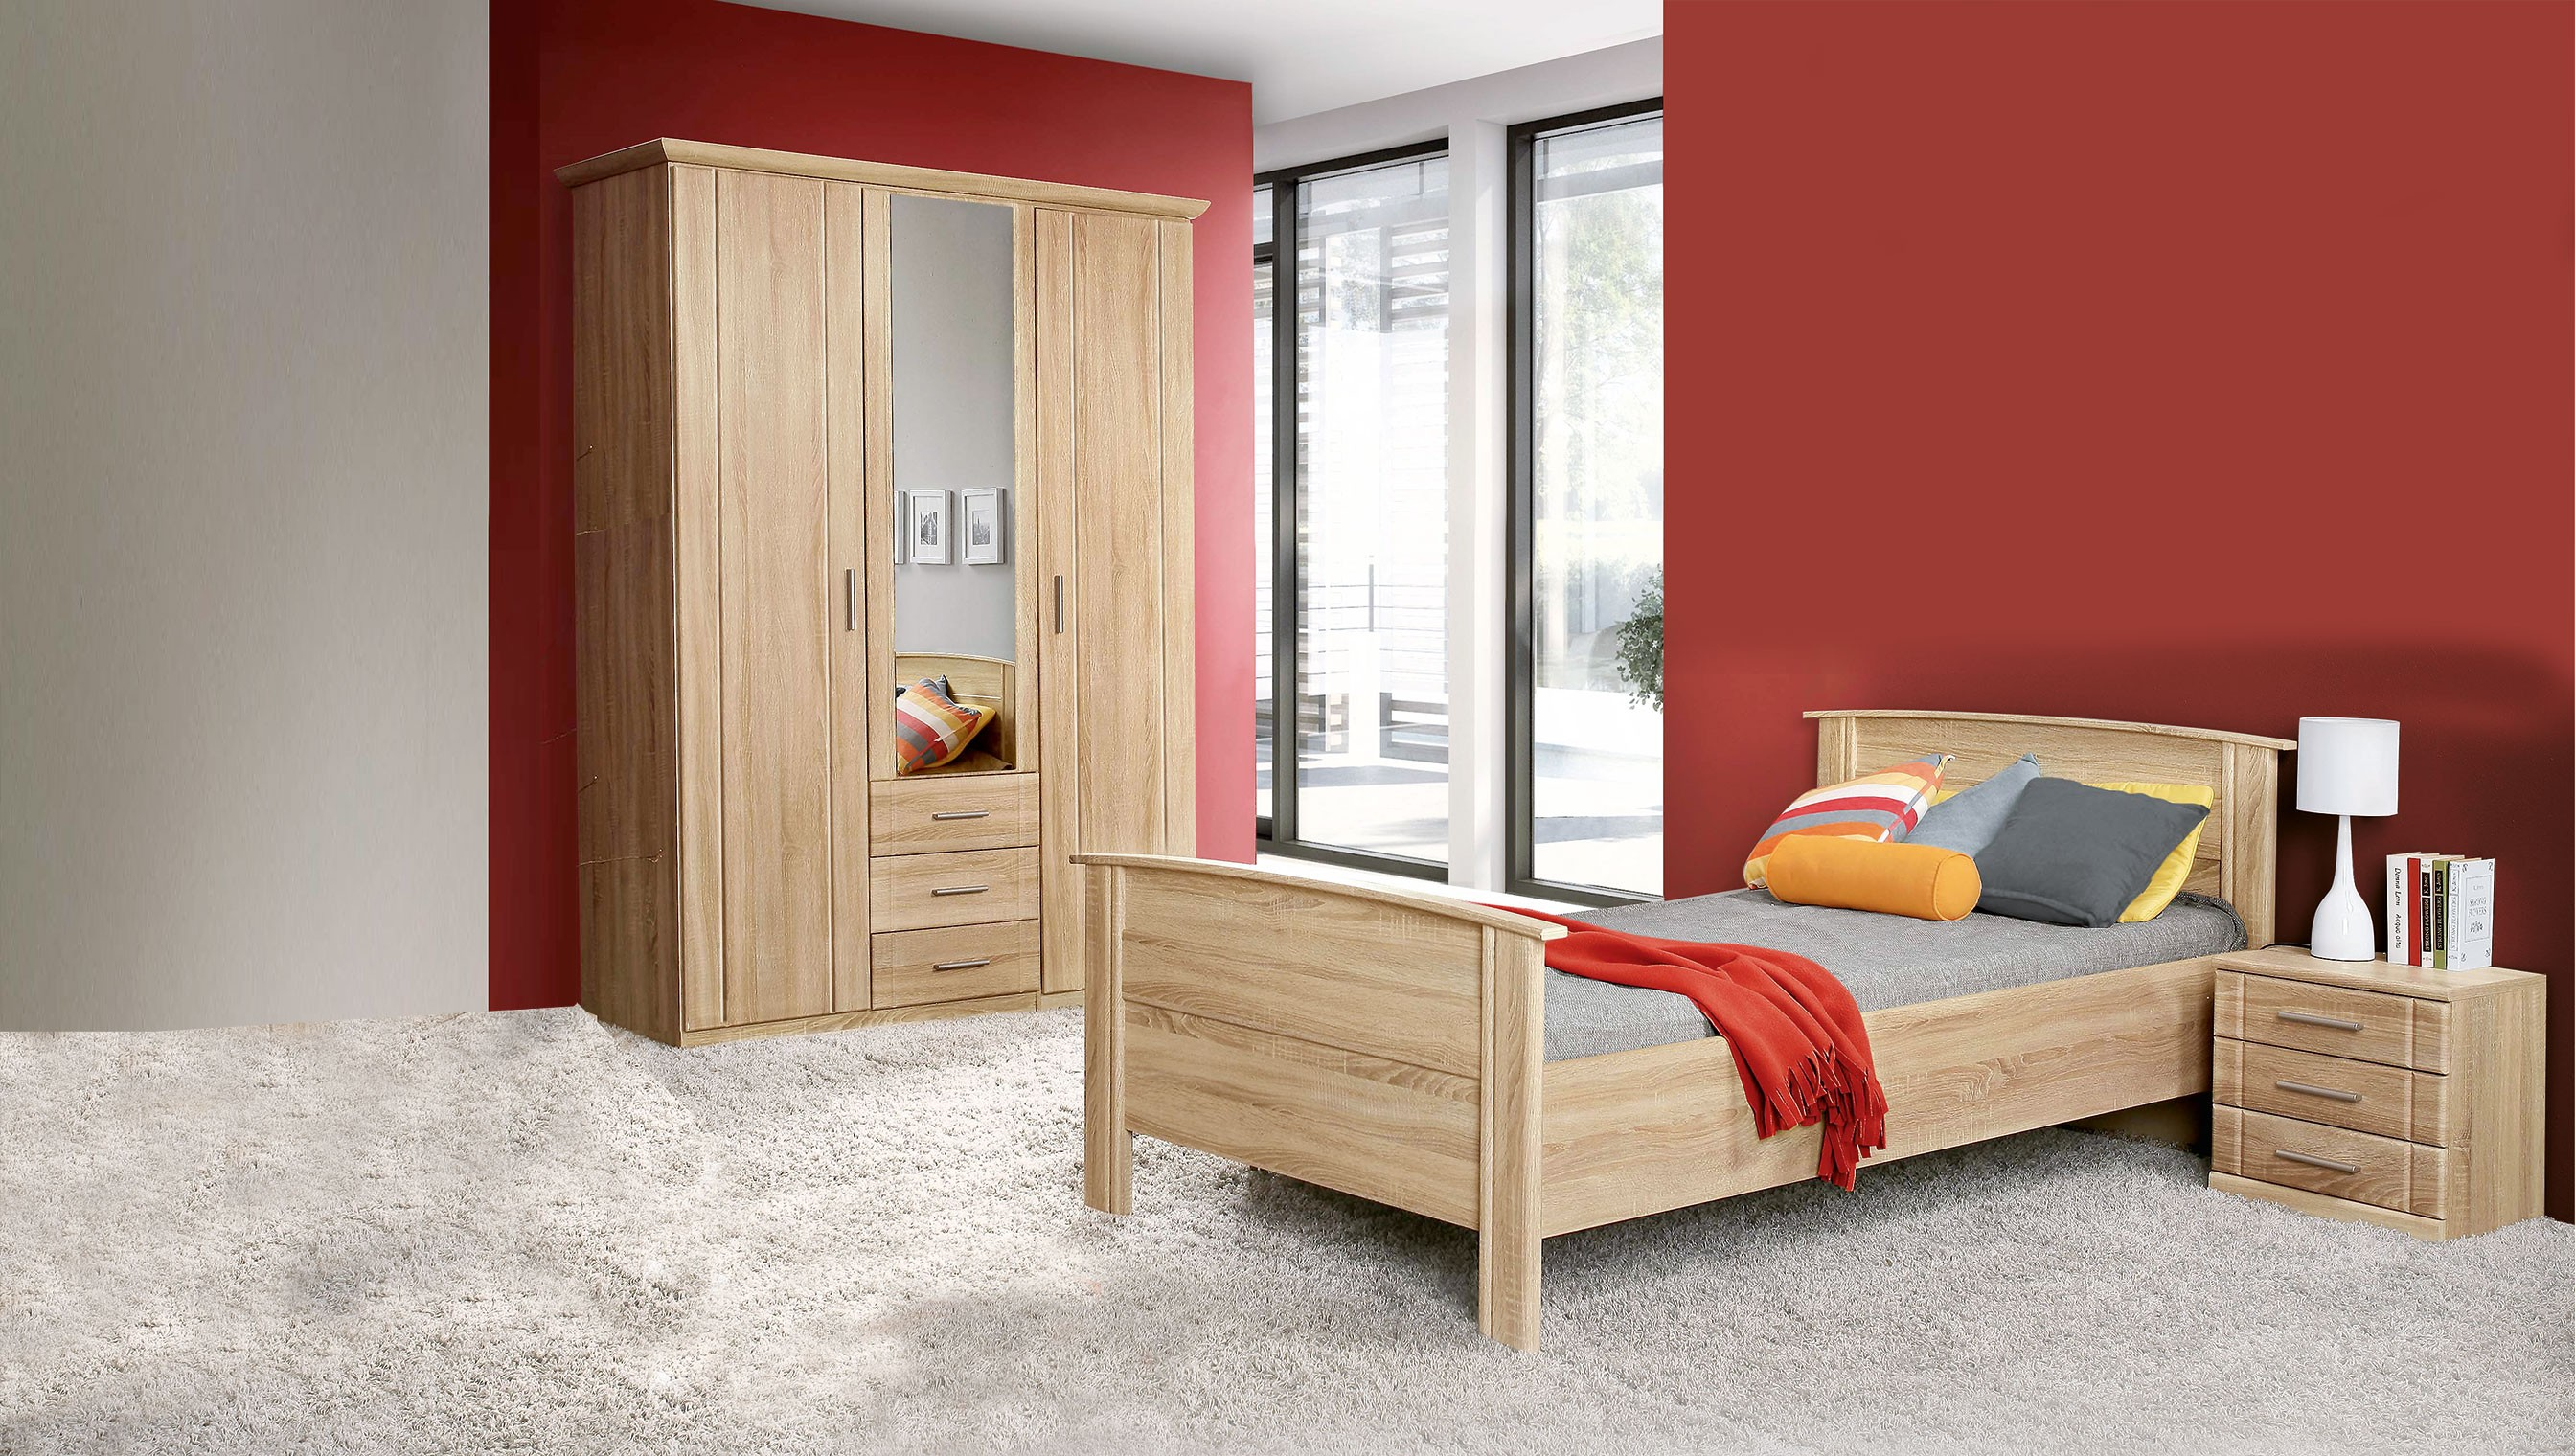 kleiderschrank sonoma eiche spilger s sparmaxx. Black Bedroom Furniture Sets. Home Design Ideas